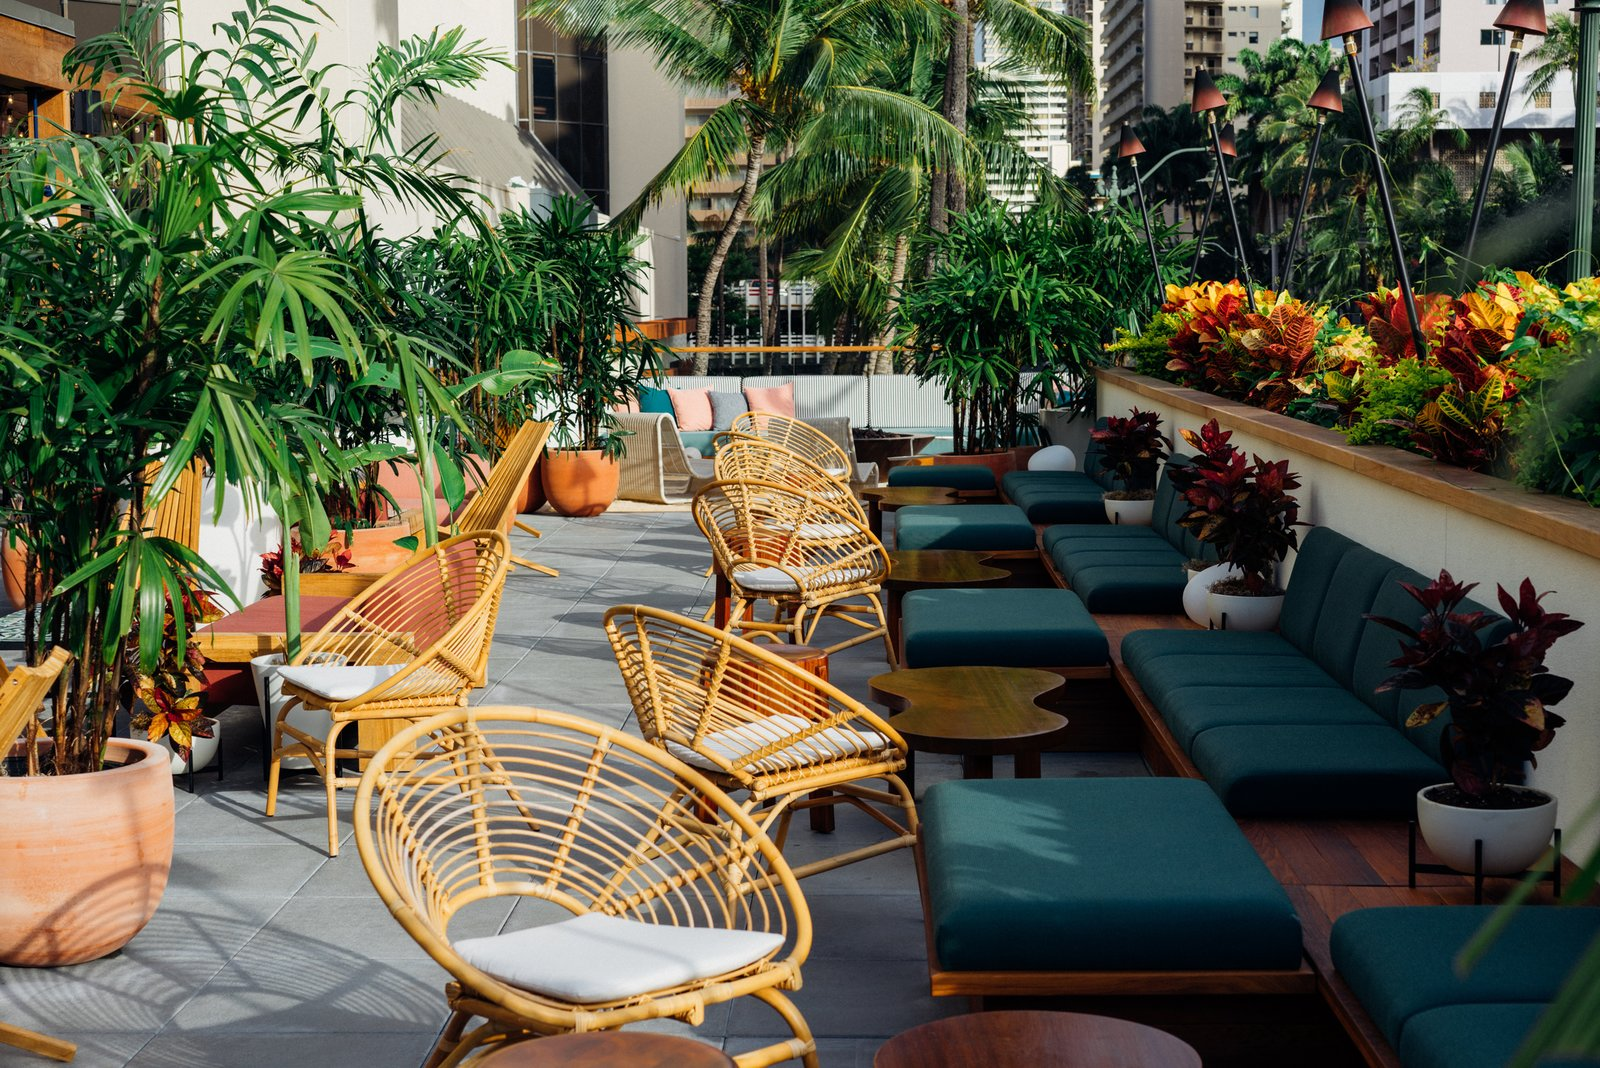 Throughout the hotel, the designers sourced a mix of new, custom, and vintage furnishings. The outdoor spaces include furniture by Kettal, custom cabanas, and lounges inspired by Locus Solus Lounge Chairs.  Photo 6 of 18 in Waikiki's Midcentury Revival Continues to Flourish With a New Jet Set-Inspired Hotel